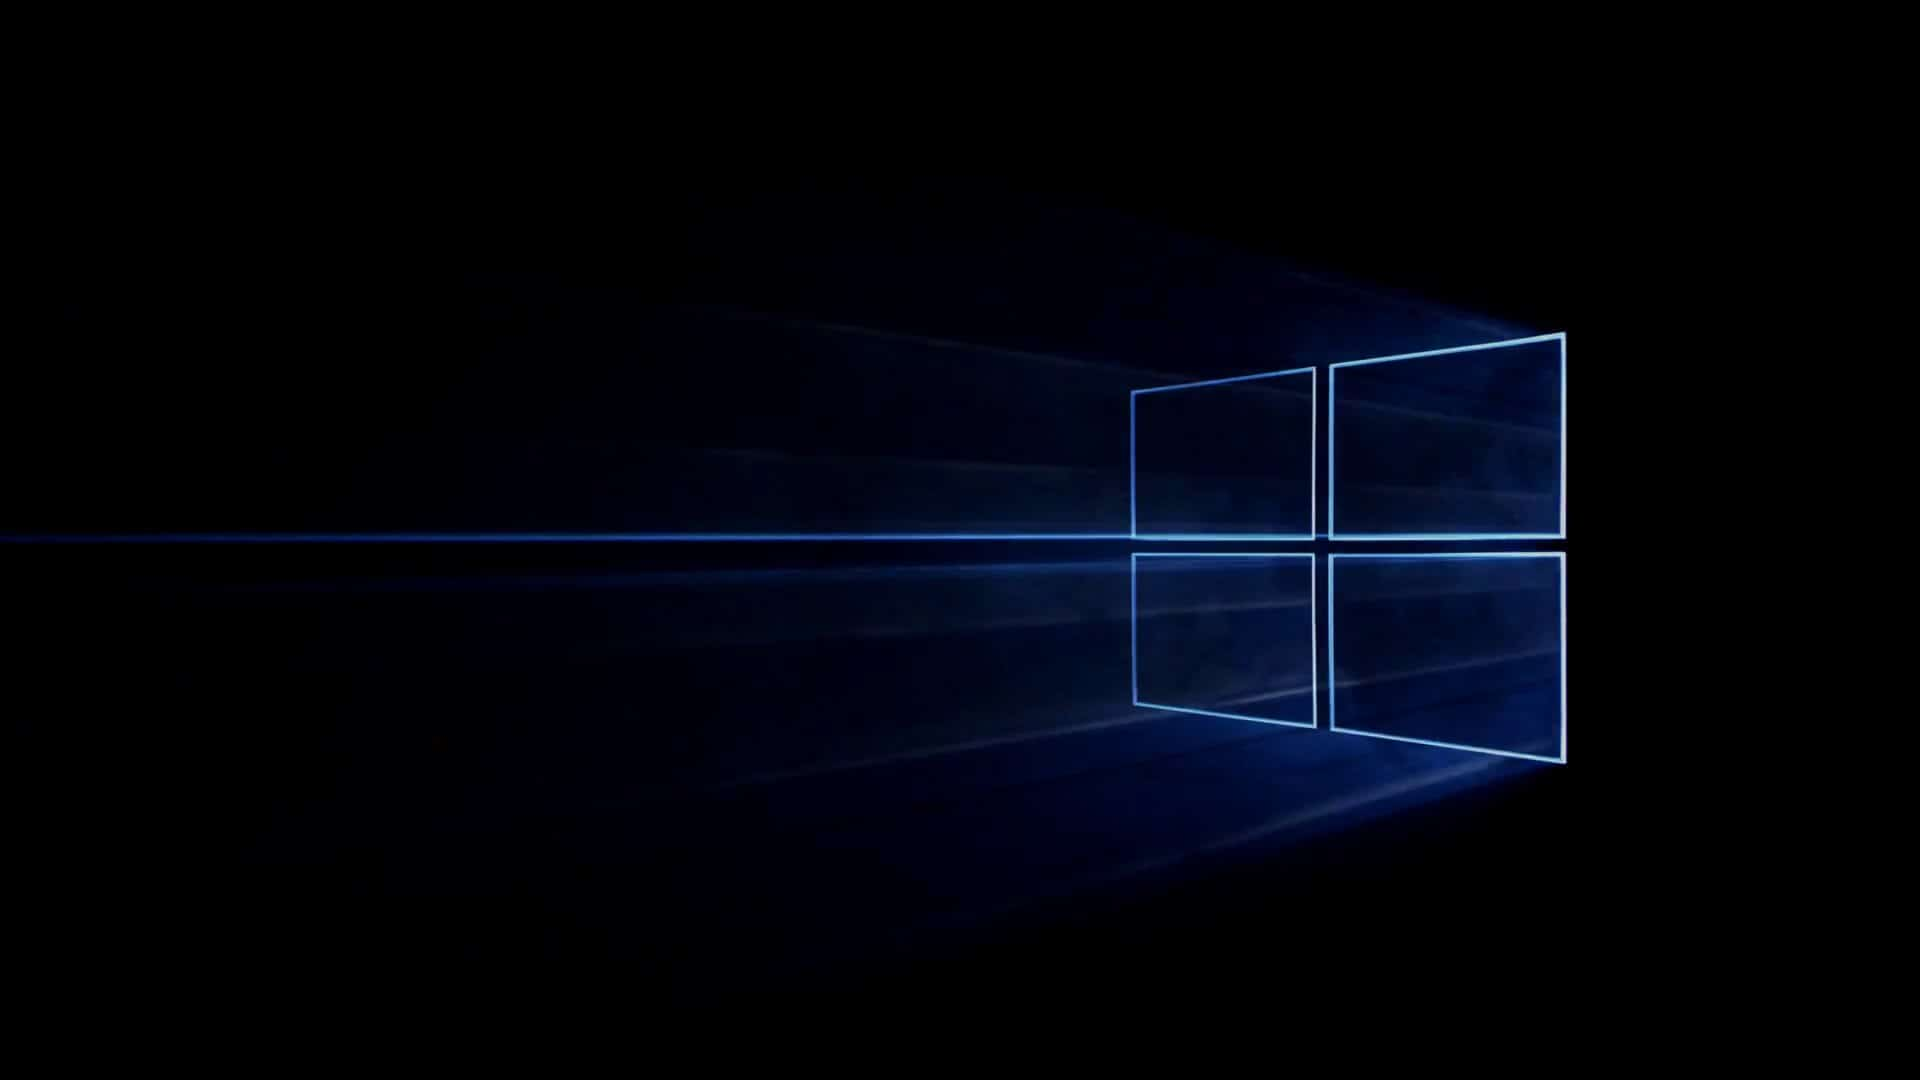 microsoft-reveals-the-official-windows-10-wallpaper-485311-3